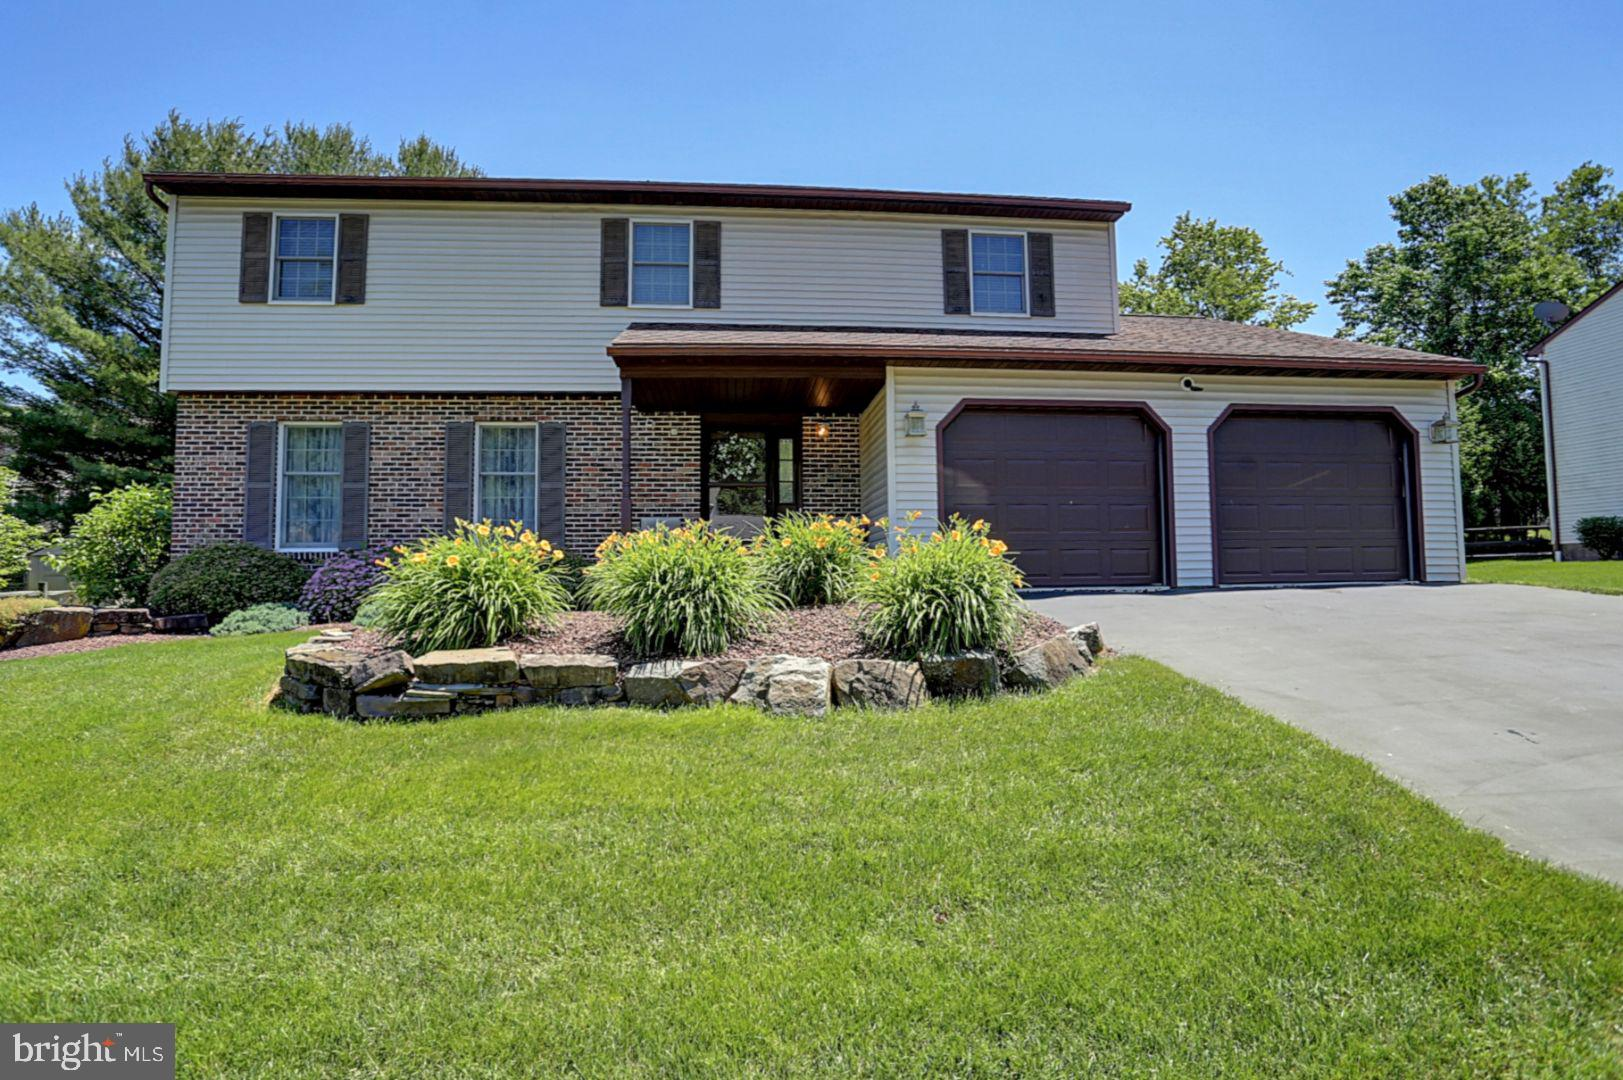 250 NEW CASTLE DRIVE, READING, PA 19607